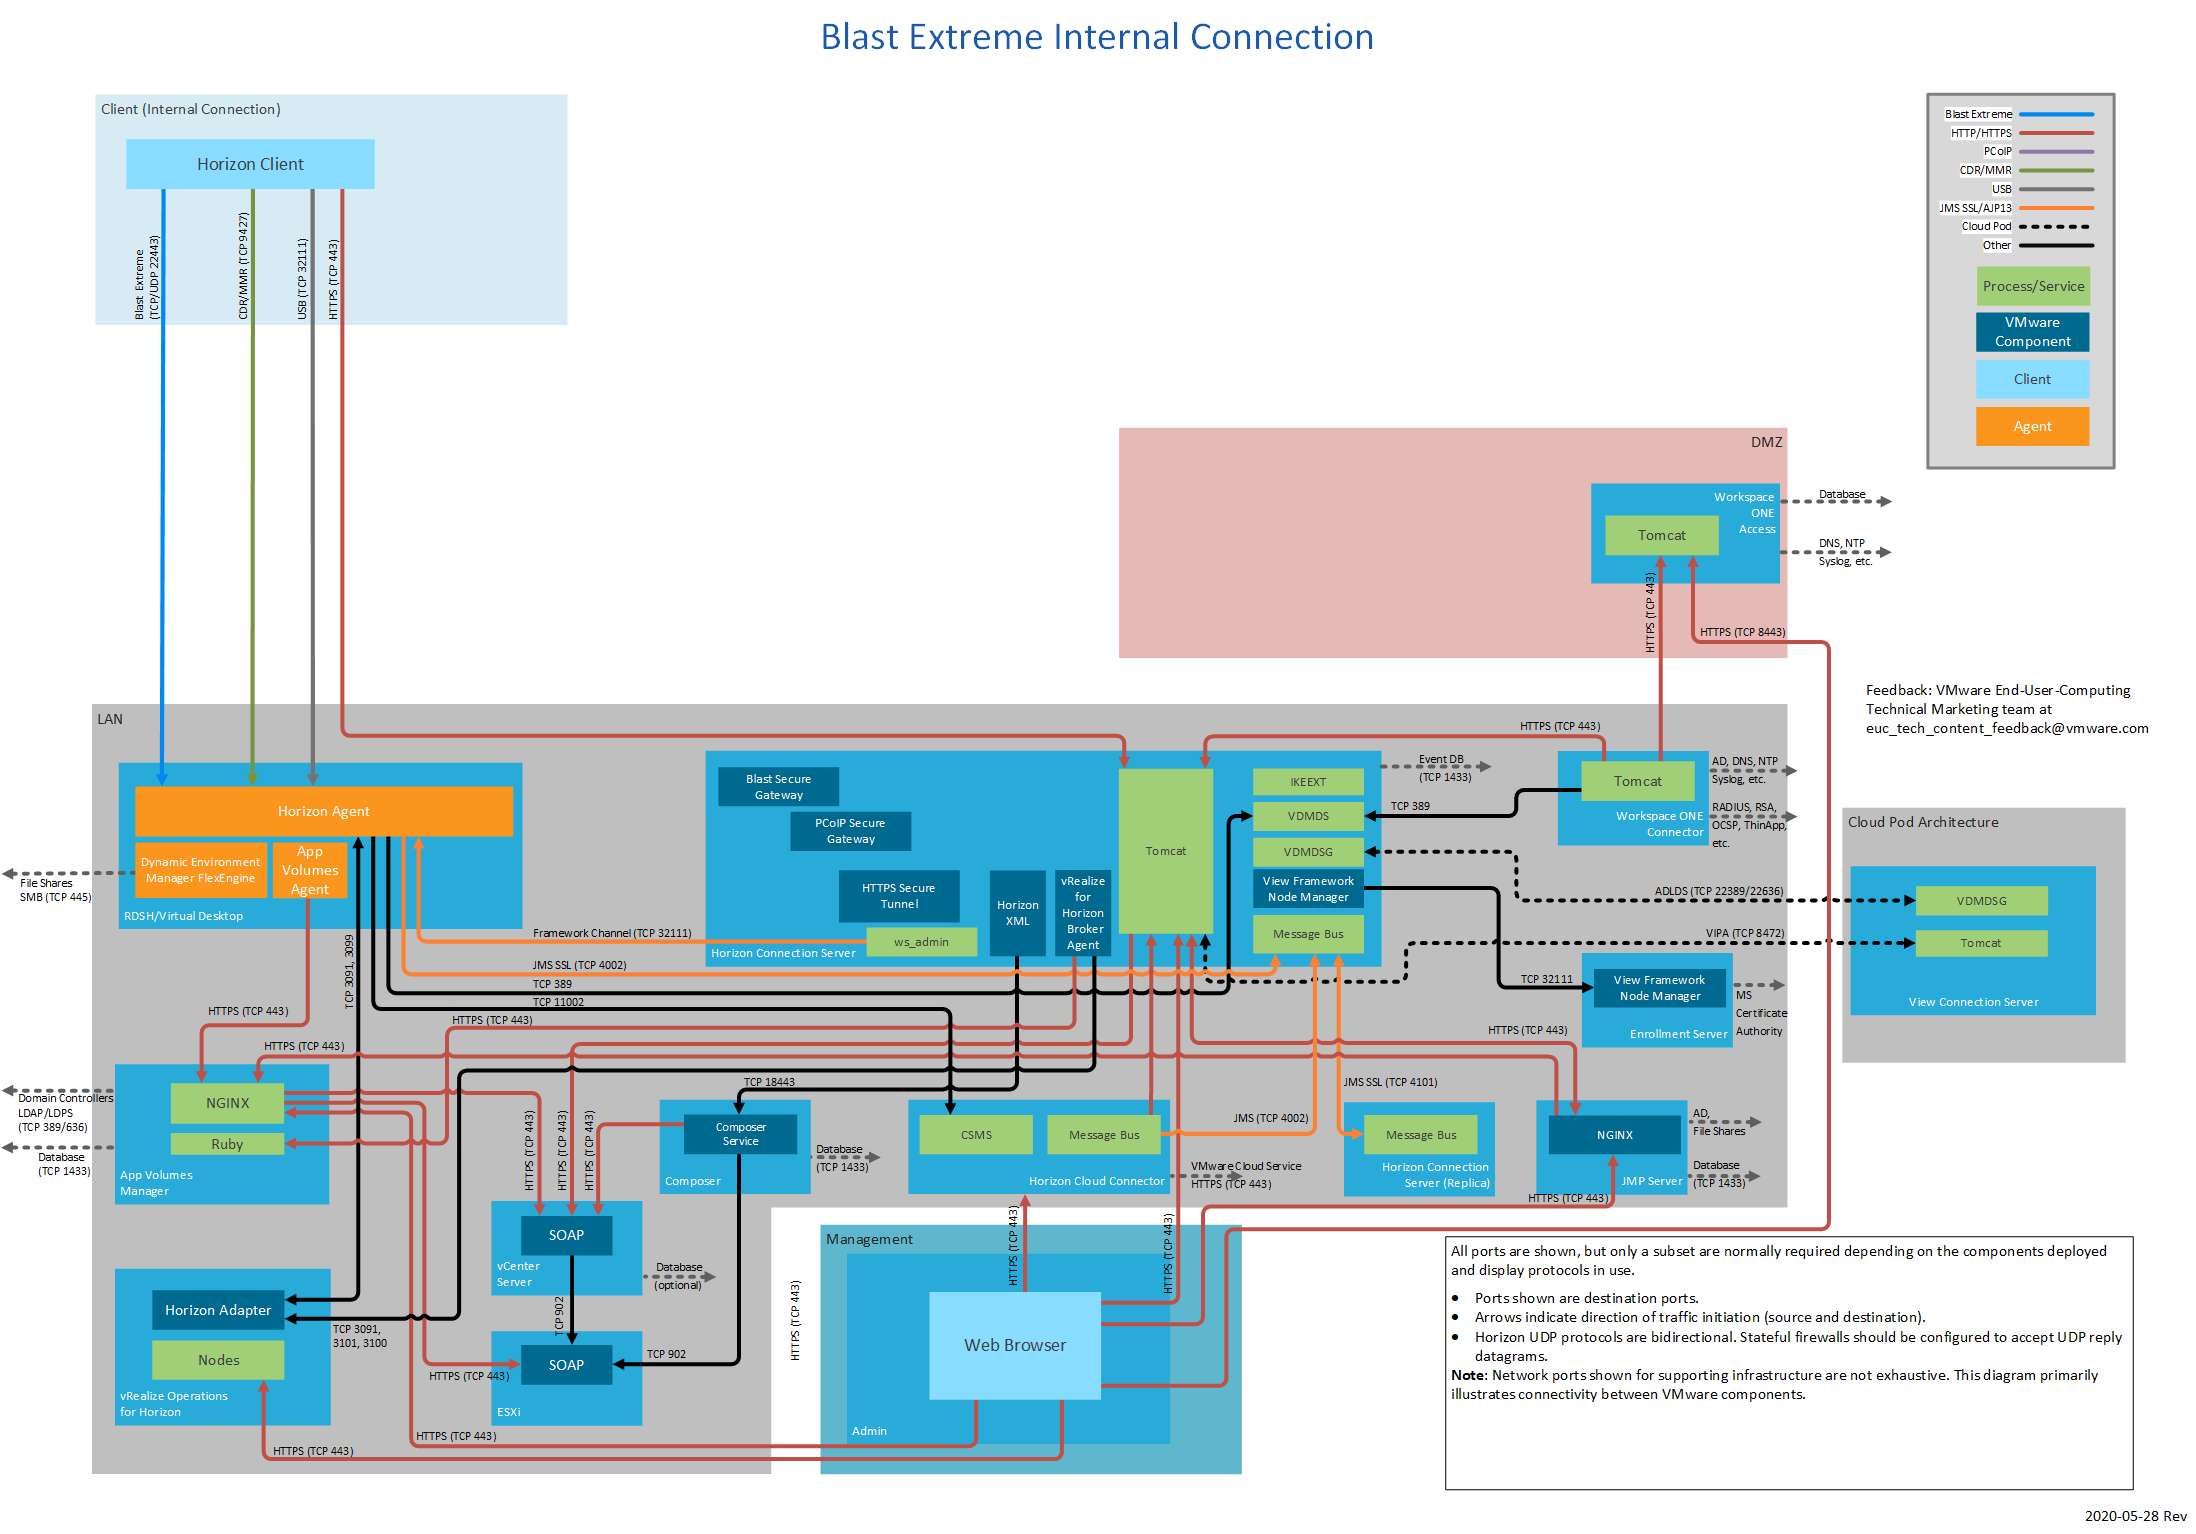 Blast extreme internal connection network ports.